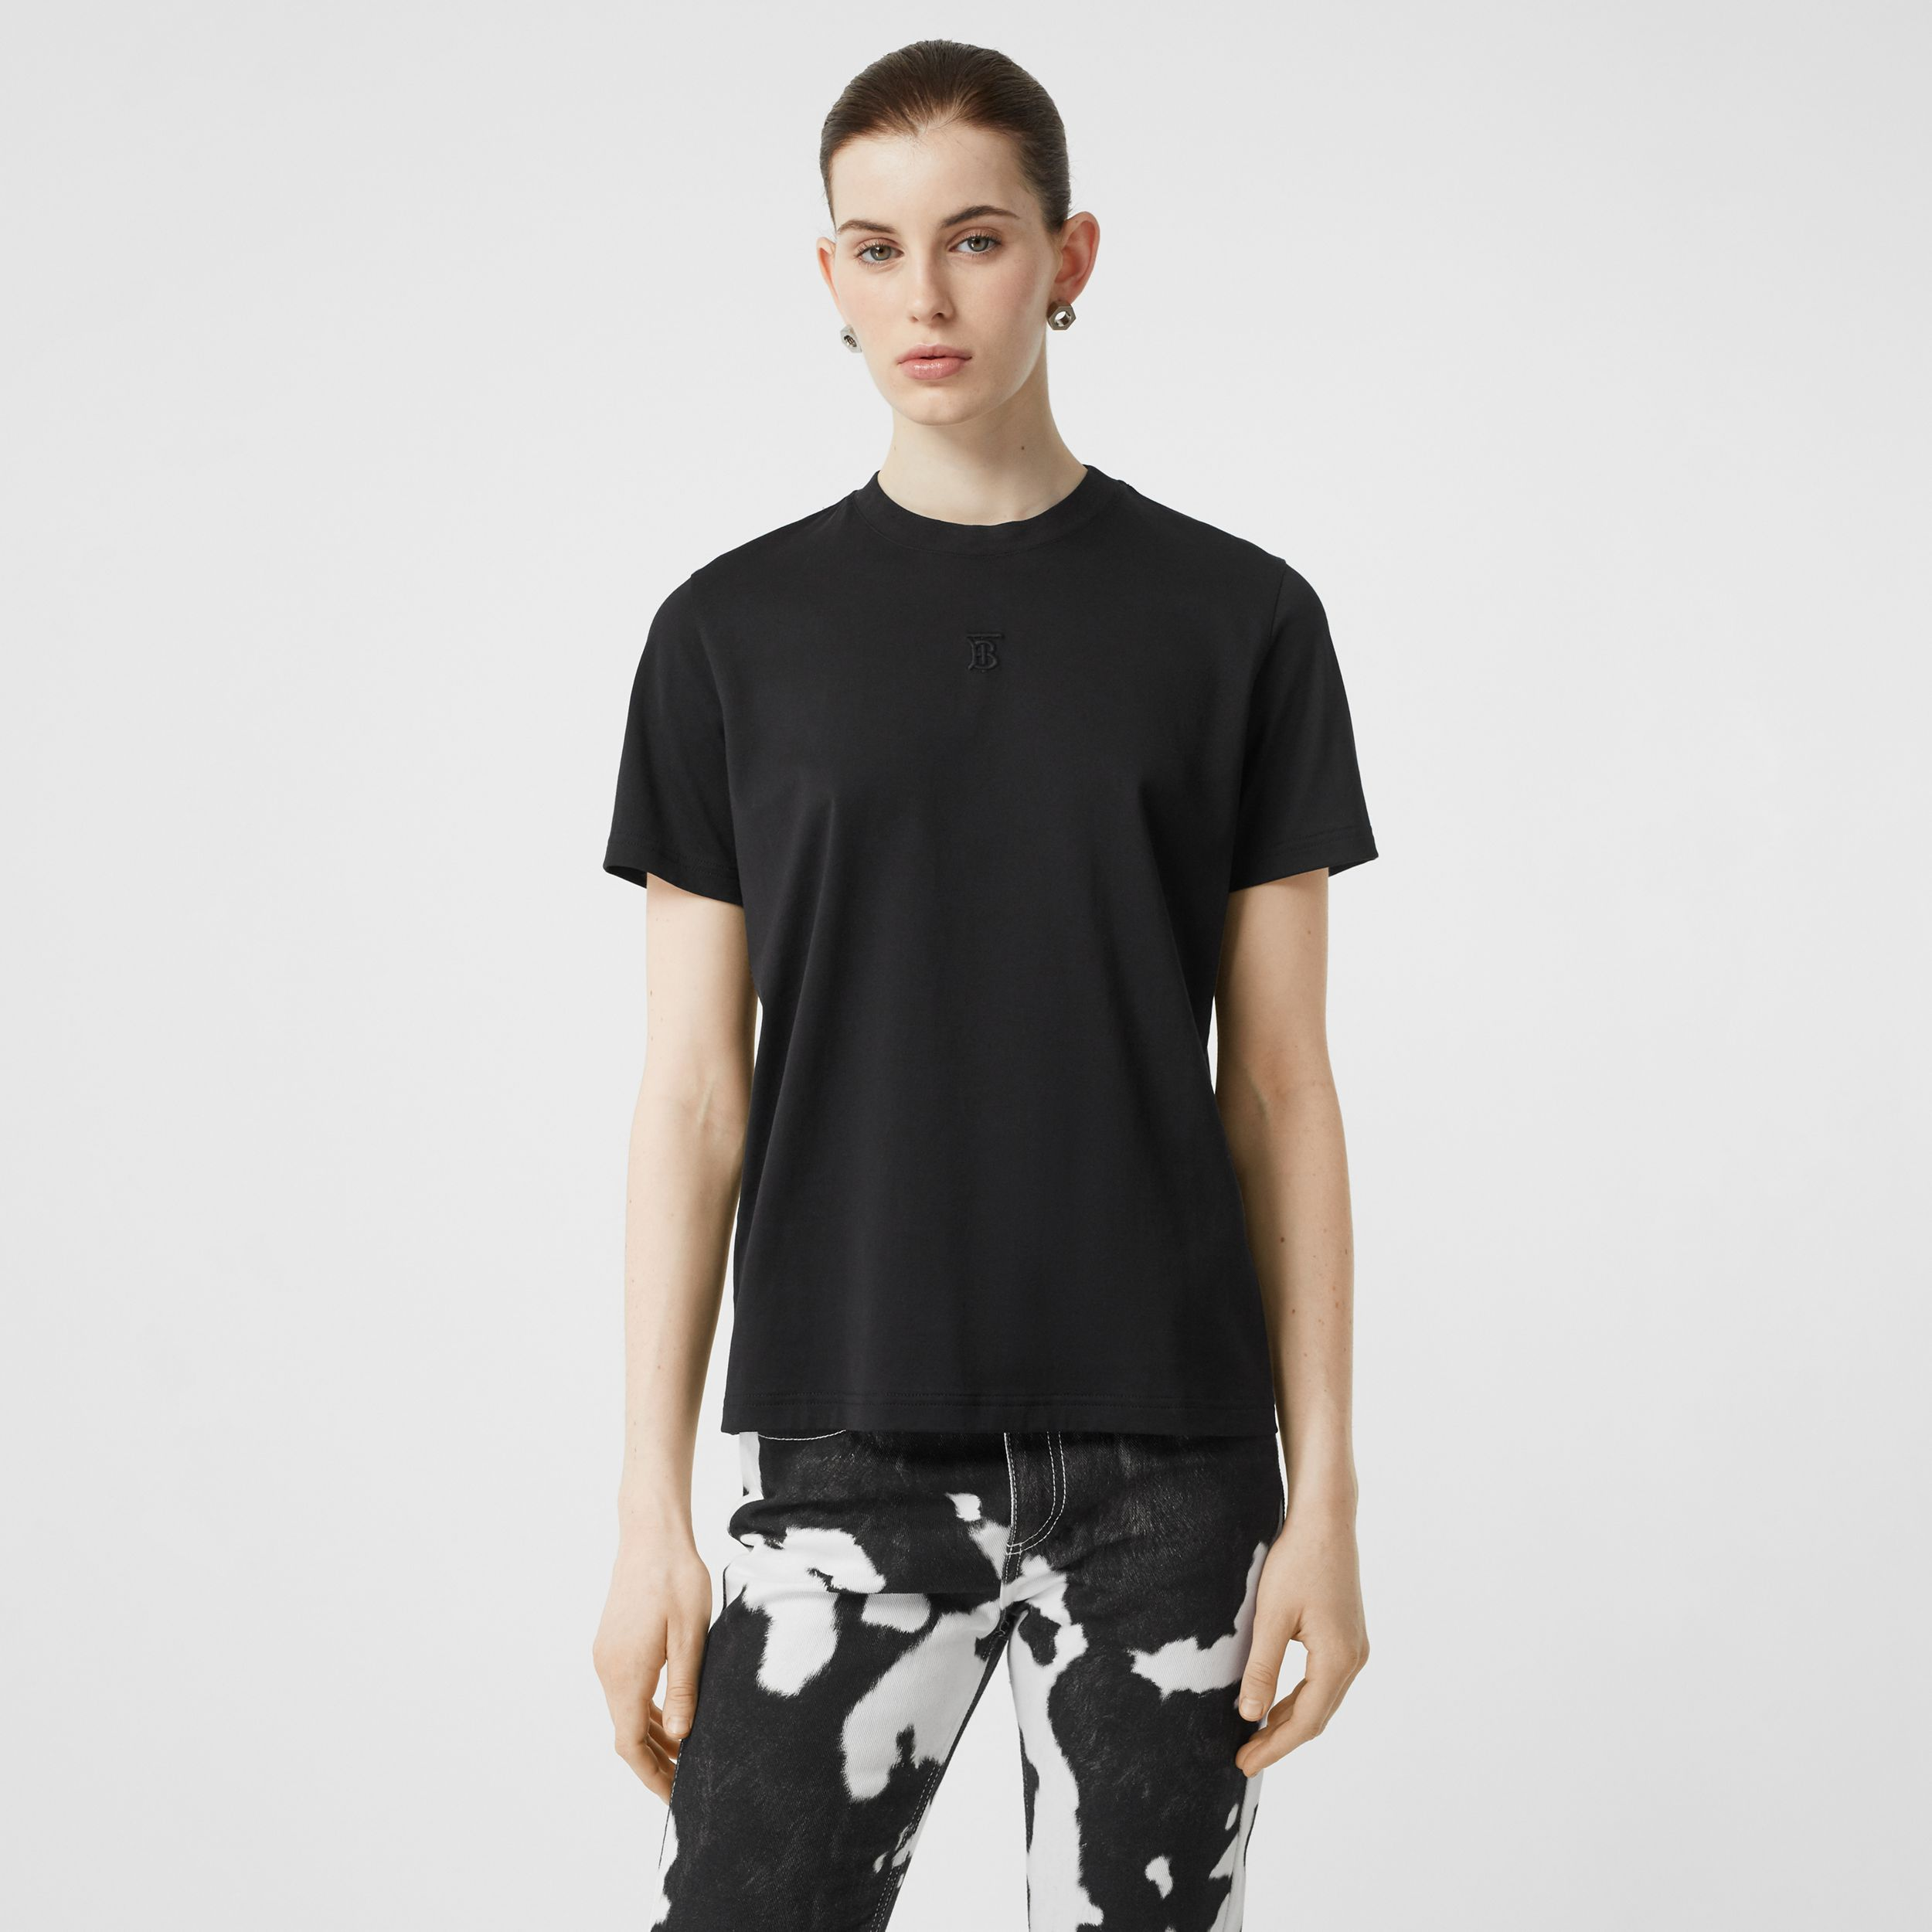 Monogram Motif Cotton T-shirt in Black - Women | Burberry Australia - 1